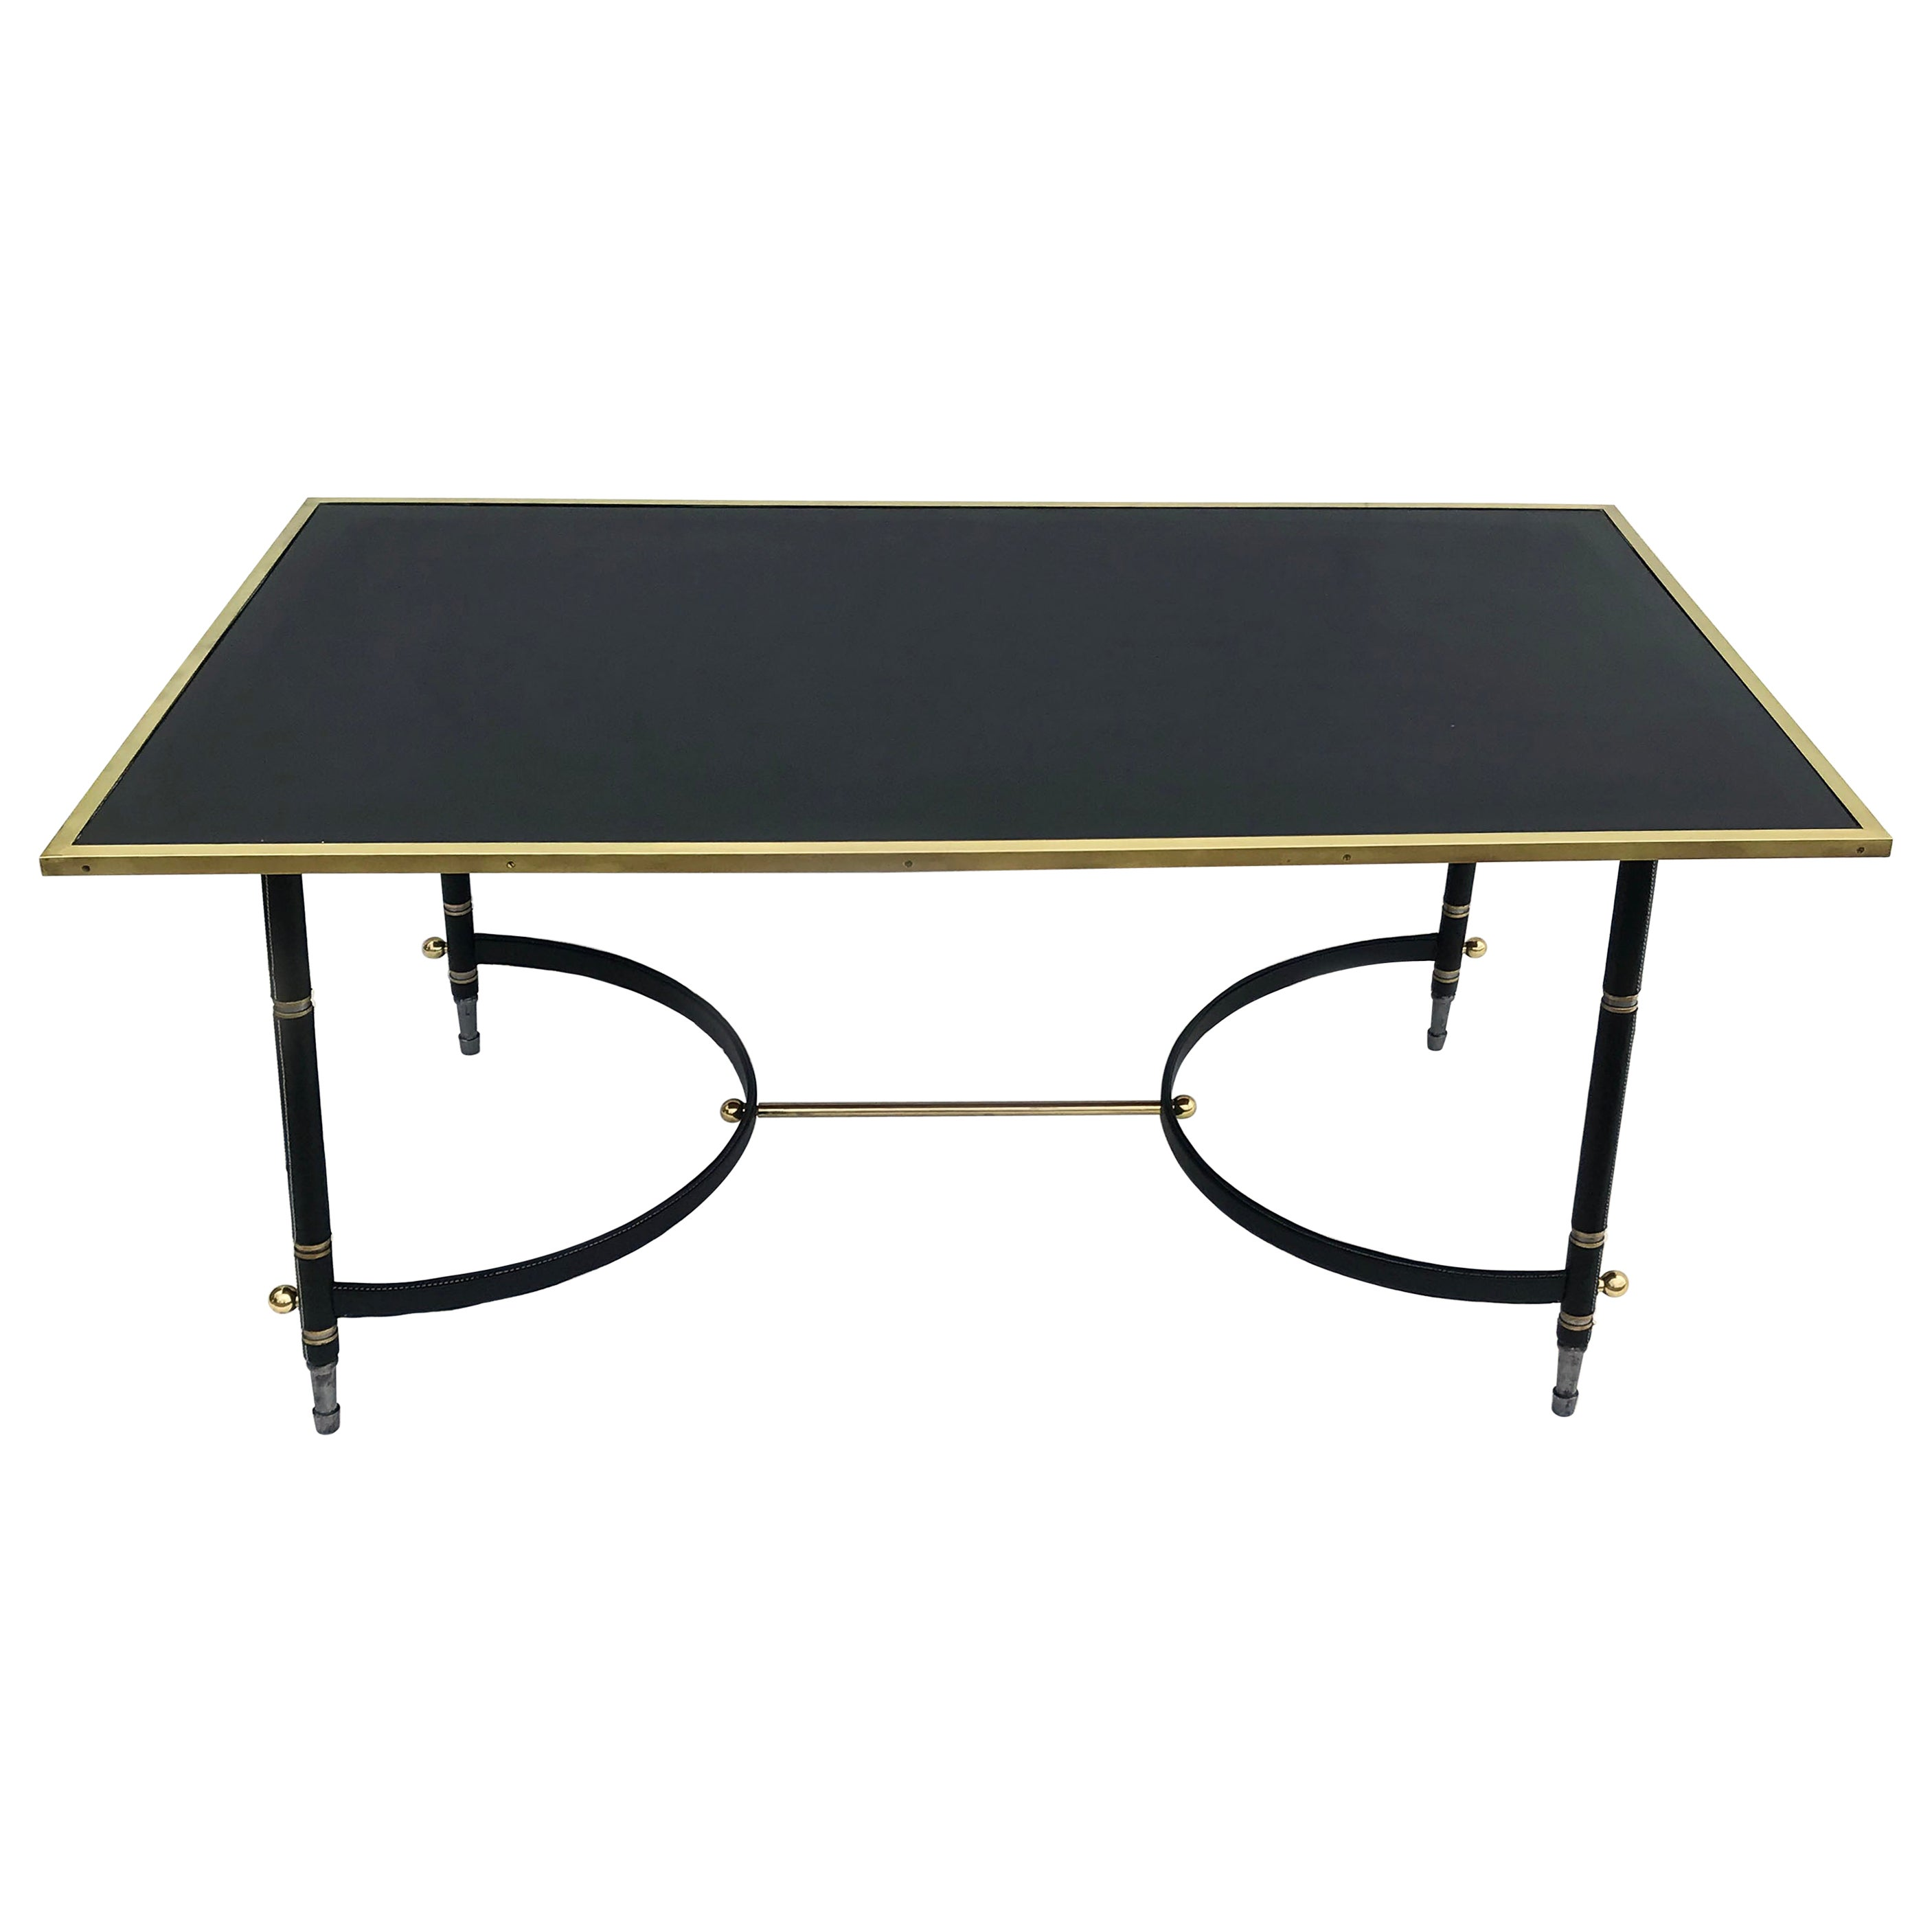 Jacques Adnet Art Deco  Brass, Steel & Leather Dining Table Or Desk France 1950